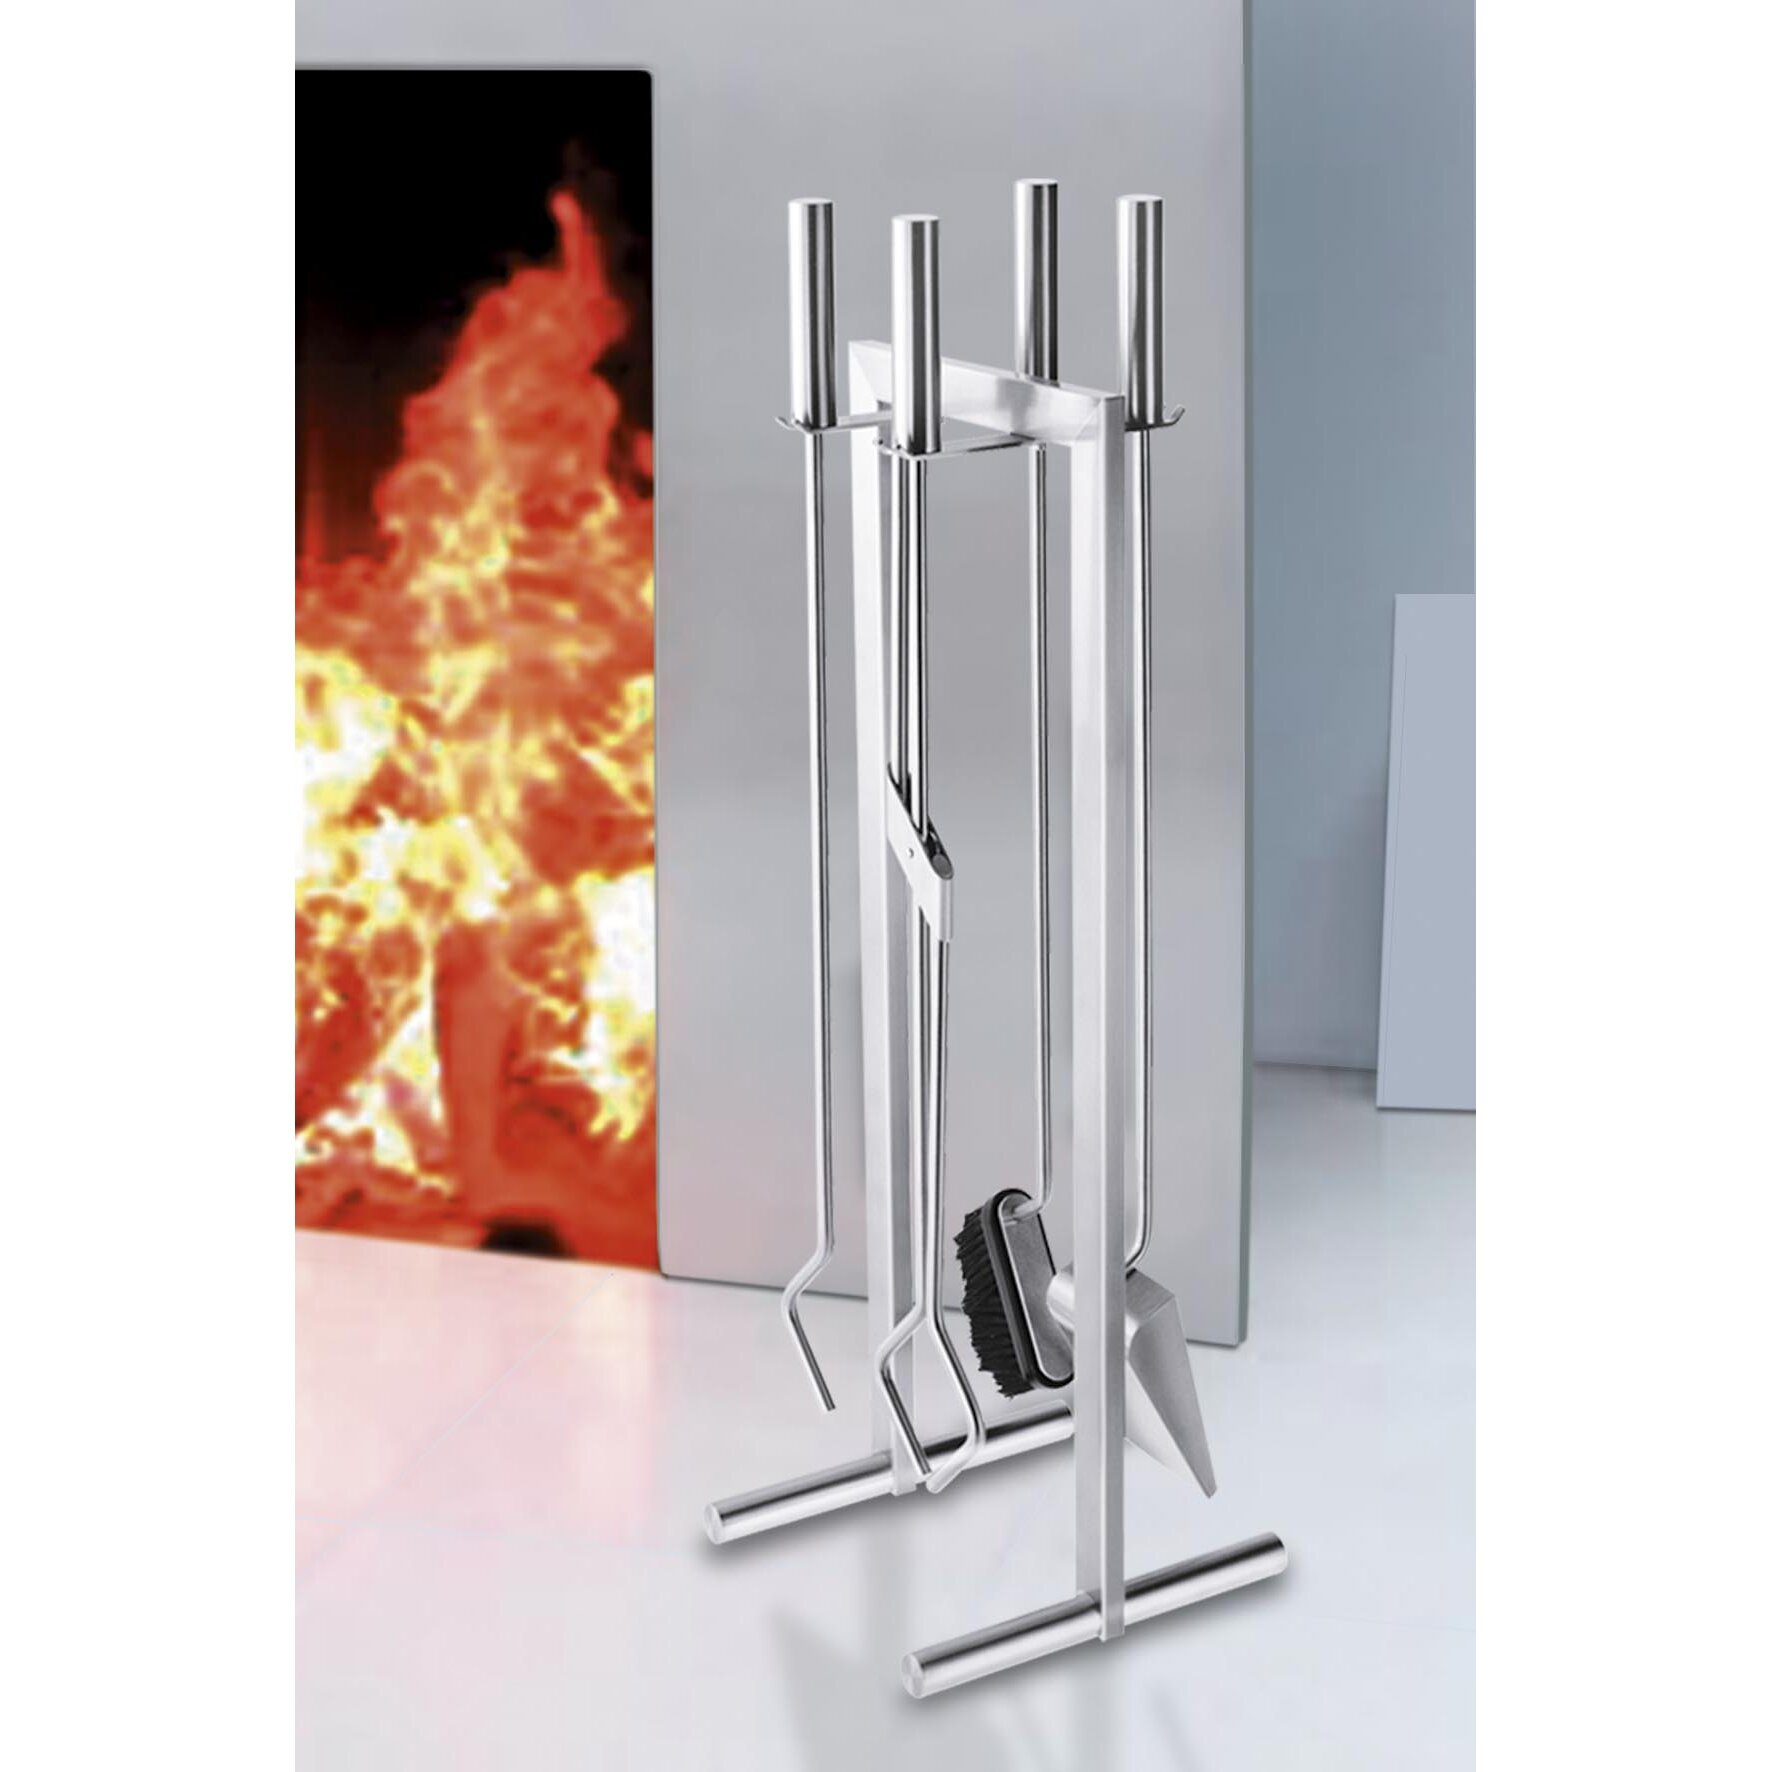 Zack calore piece stainless steel fireplace tool set